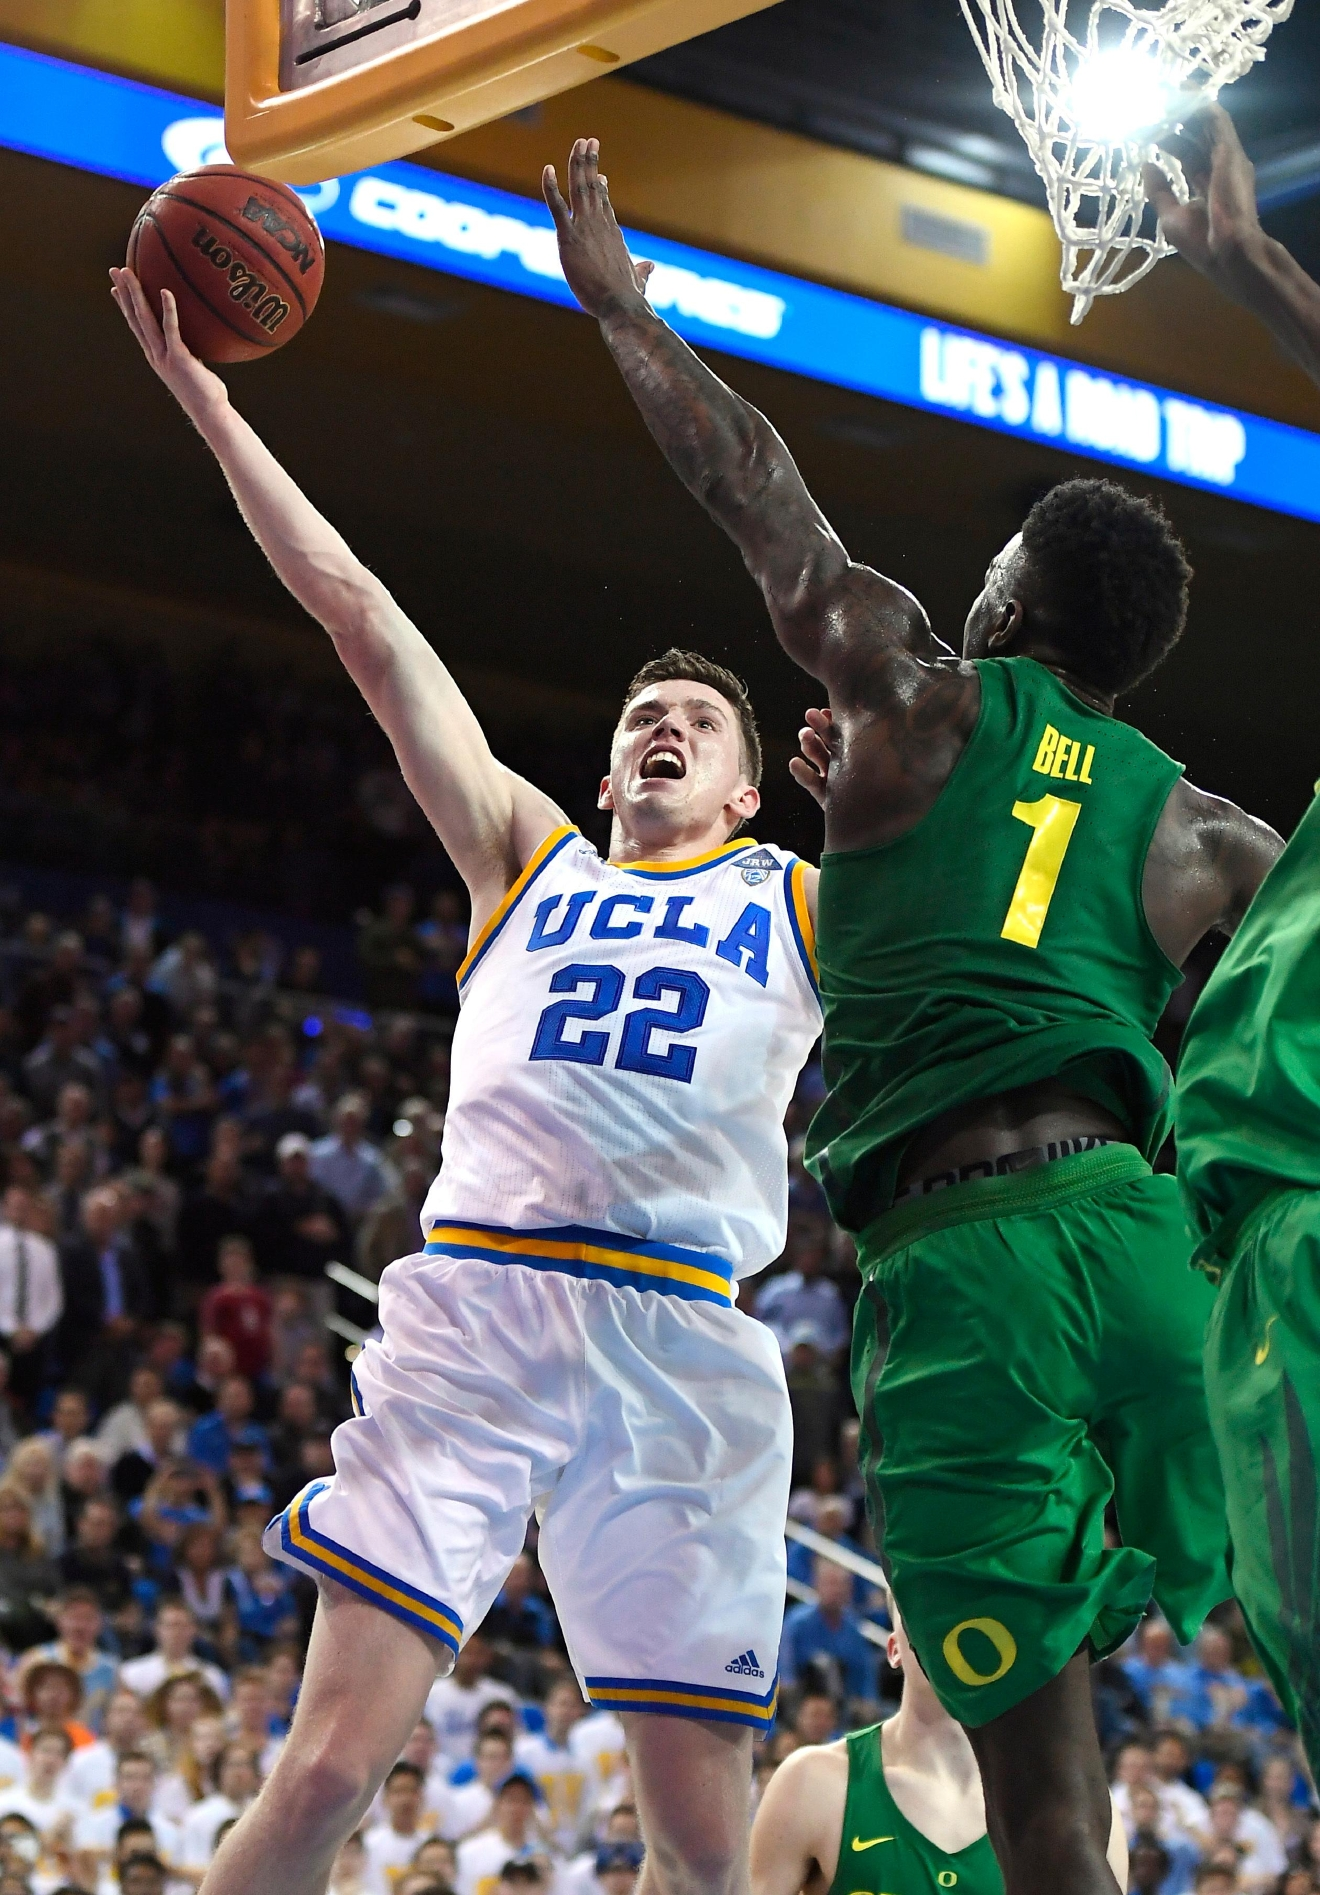 UCLA forward TJ Leaf, left, shoots as Oregon forward Jordan Bell defends during the second half of an NCAA college basketball game, Thursday, Feb. 9, 2017, in Los Angeles. UCLA won 82-79. (AP Photo/Mark J. Terrill)